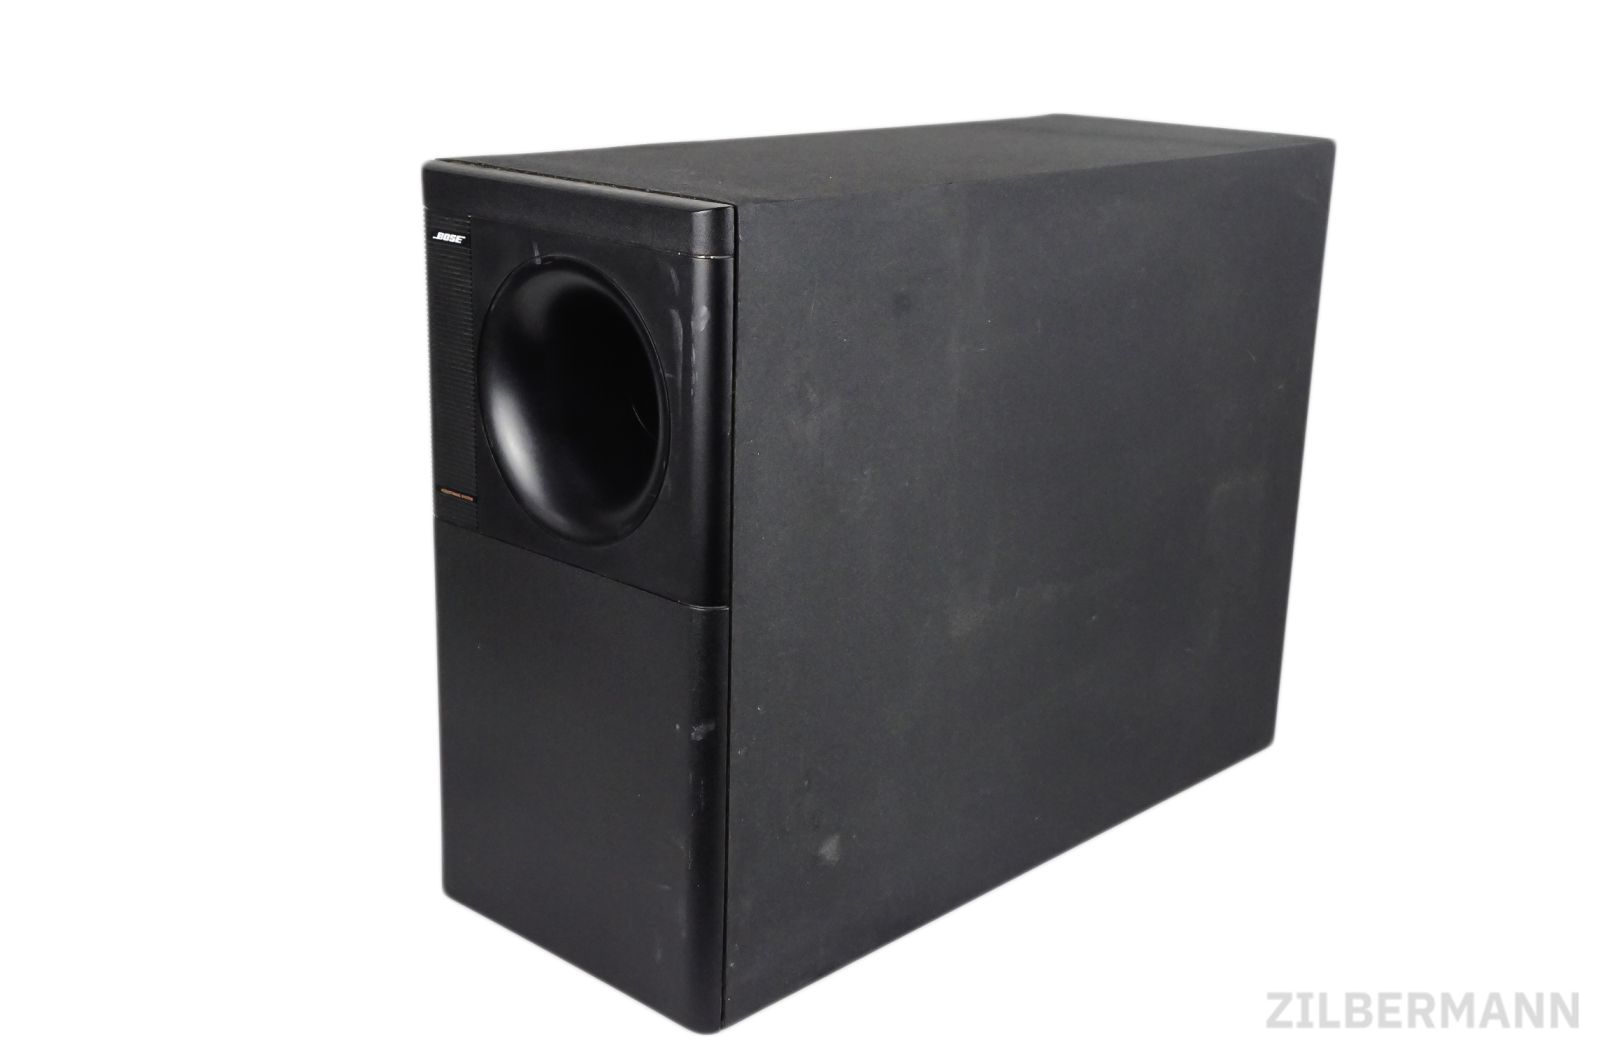 Bose_Acoustimass_5_Series_II_Subwoofer_06